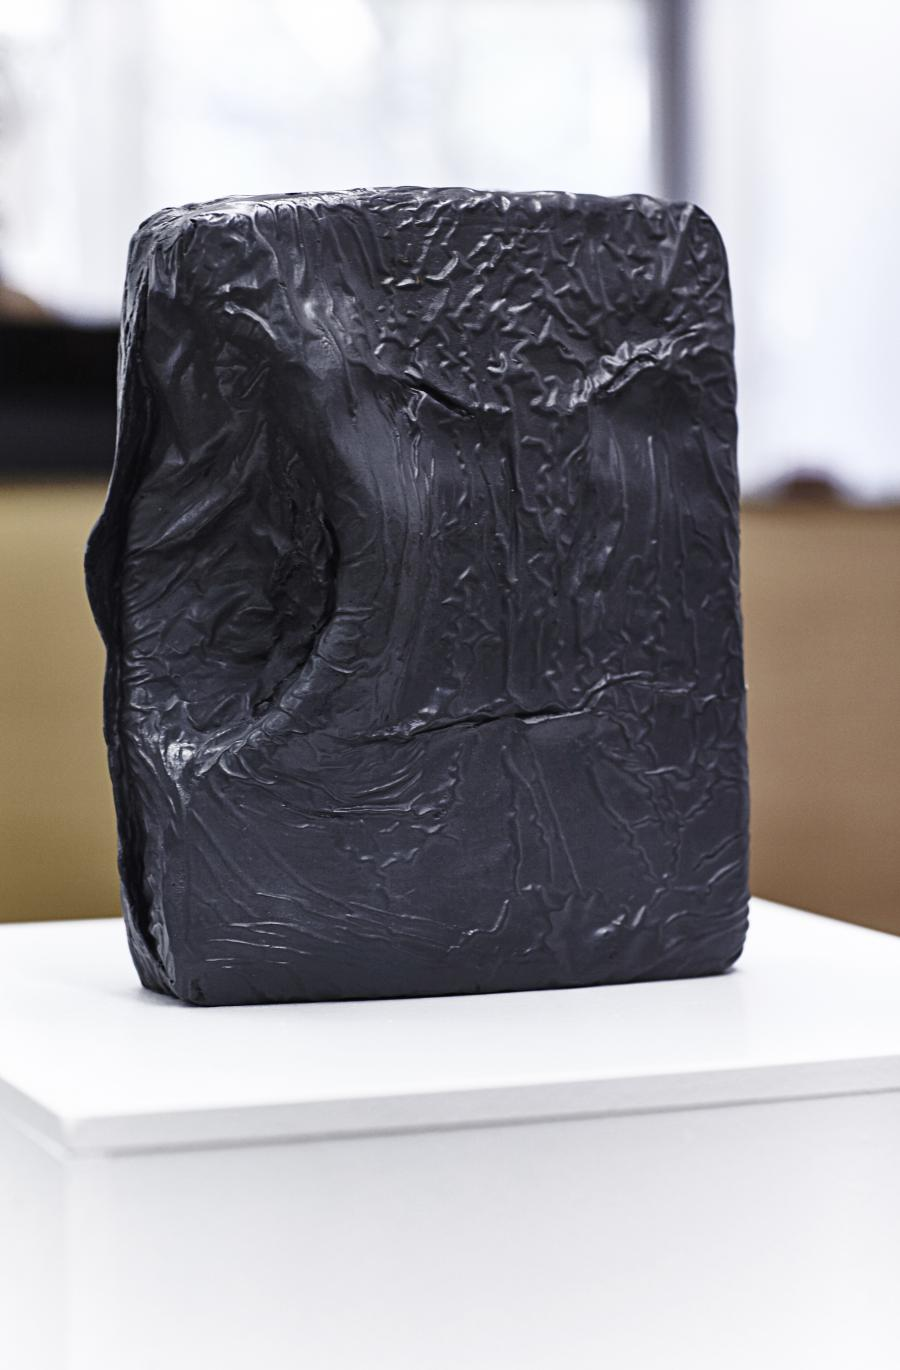 Erwin Wurm | Bad Thoughts II | 2016 | Bronze patiniert | 29 x 26 x 14 cm | Ed. 2/2 (2 Ed.   2 AP)